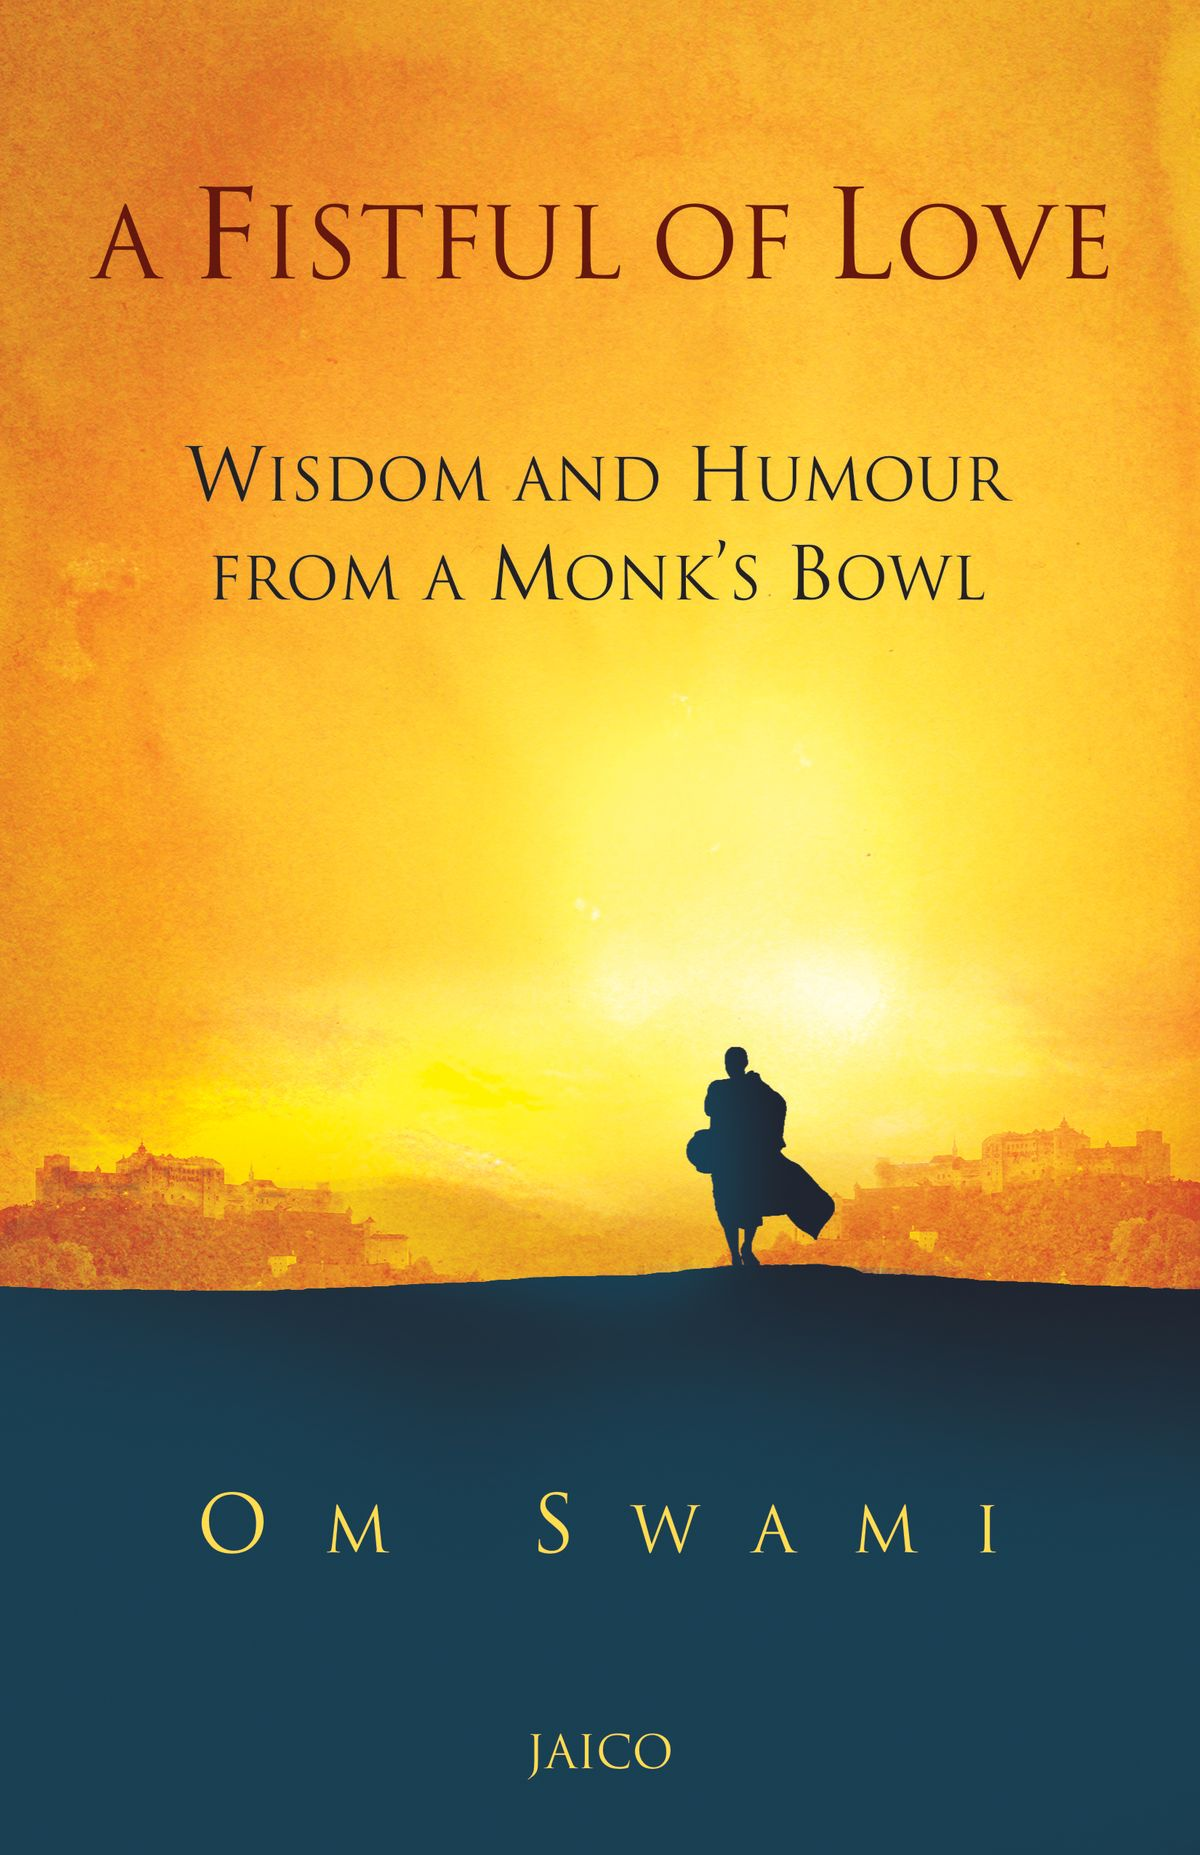 A FISTFUL OF LOVE (WISDOM & HUMOUR FROM A MONKS BOWL)